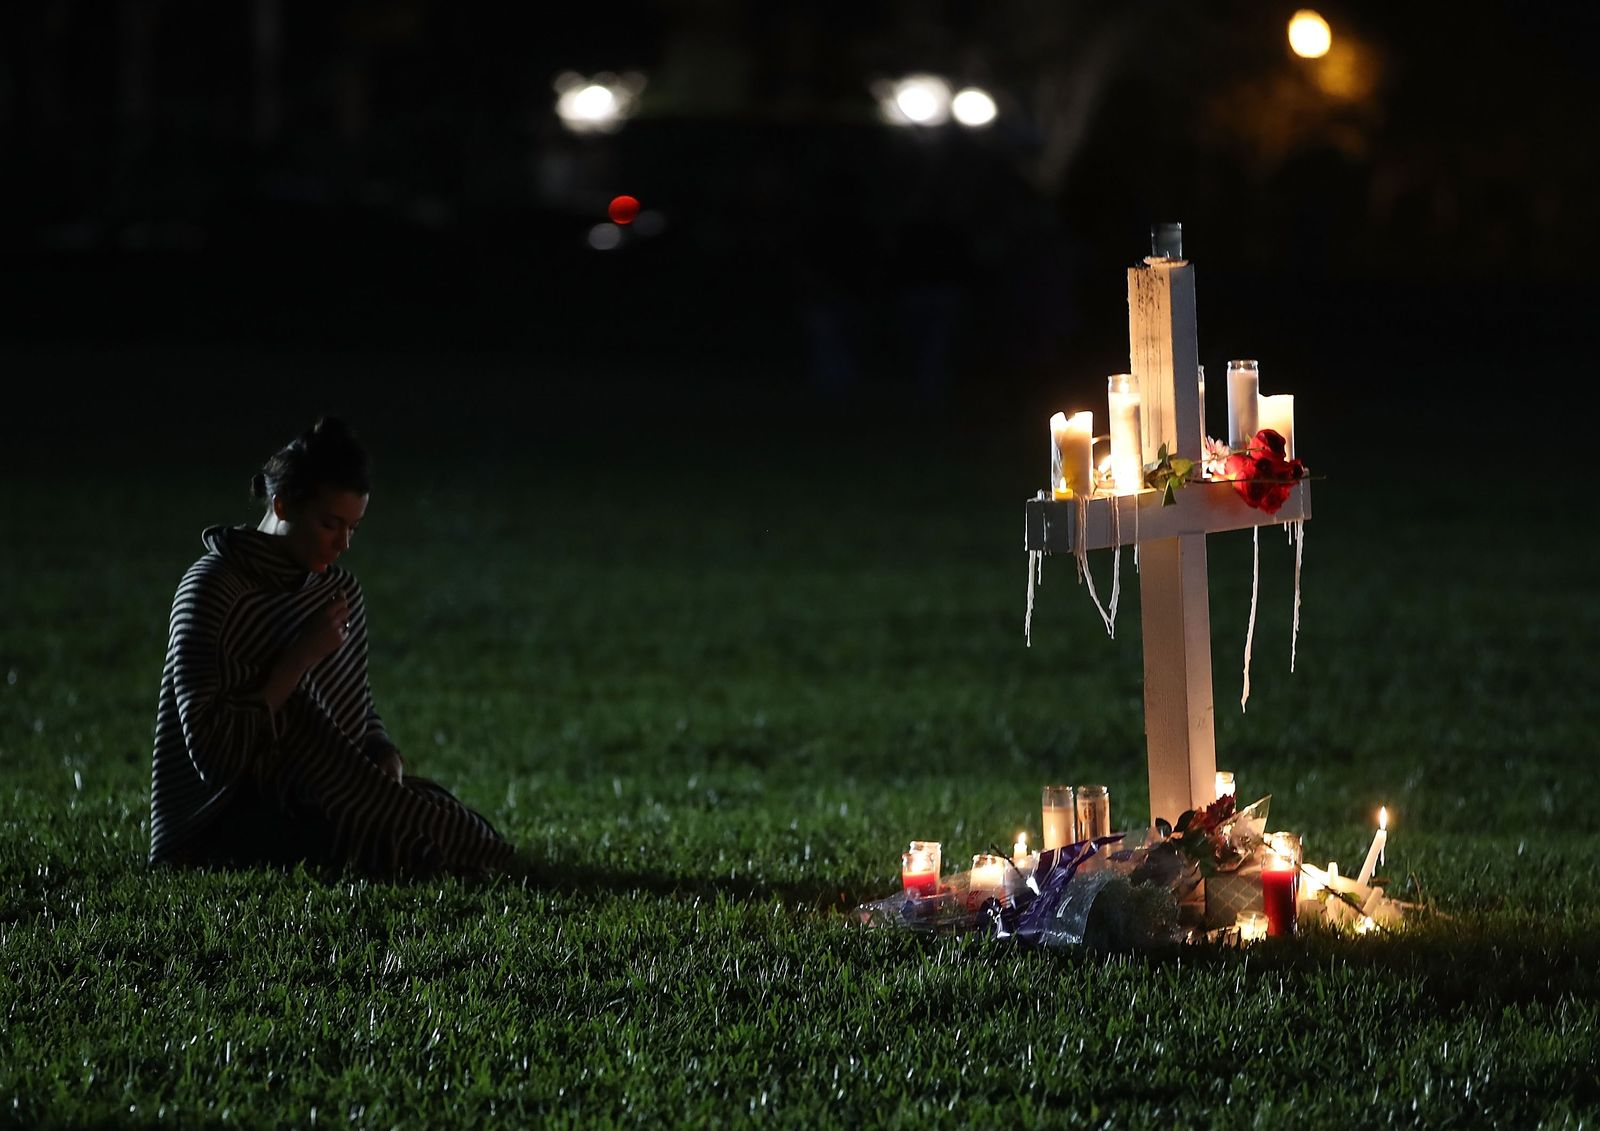 US-FLORIDA-TOWN-OF-PARKLAND-IN-MOURNING,-AFTER-SHOOTING-AT-MARJO